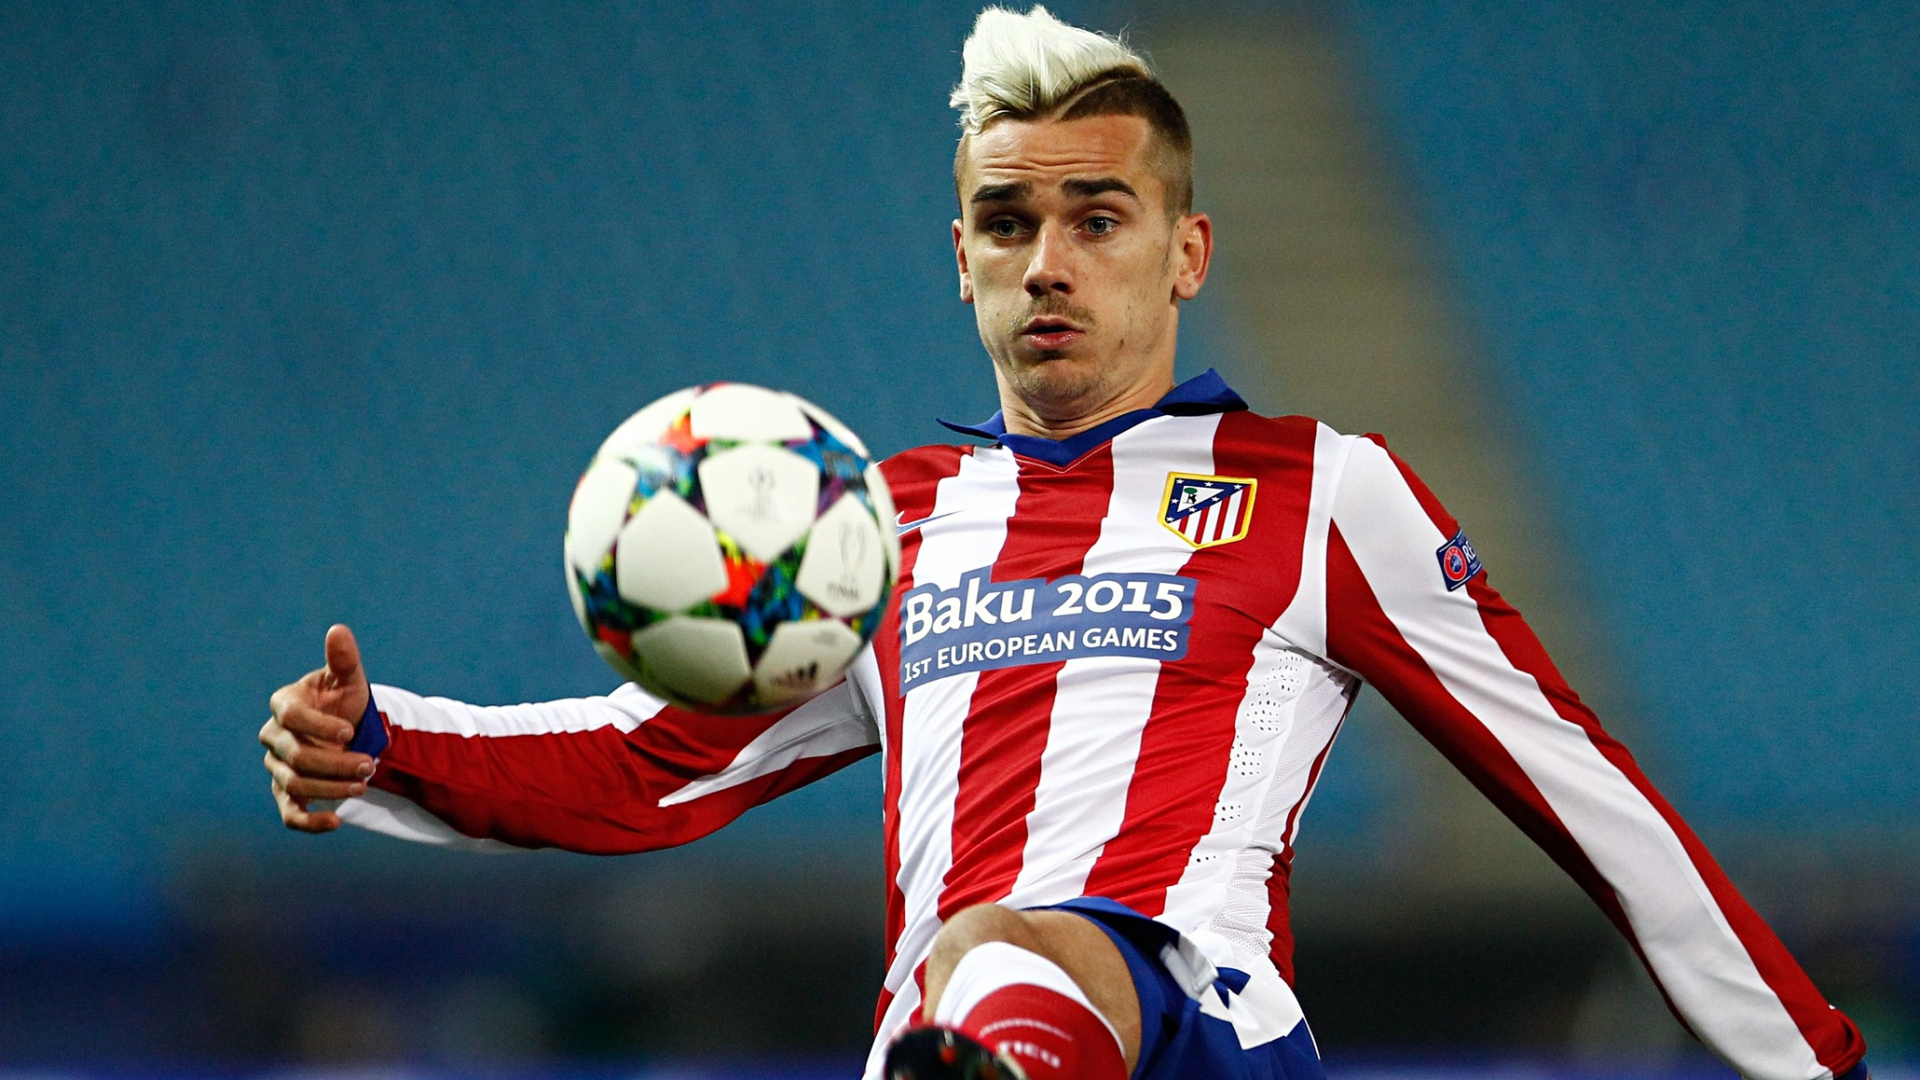 Antoine griezmann wallpapers images photos pictures - Antoine griezmann ...